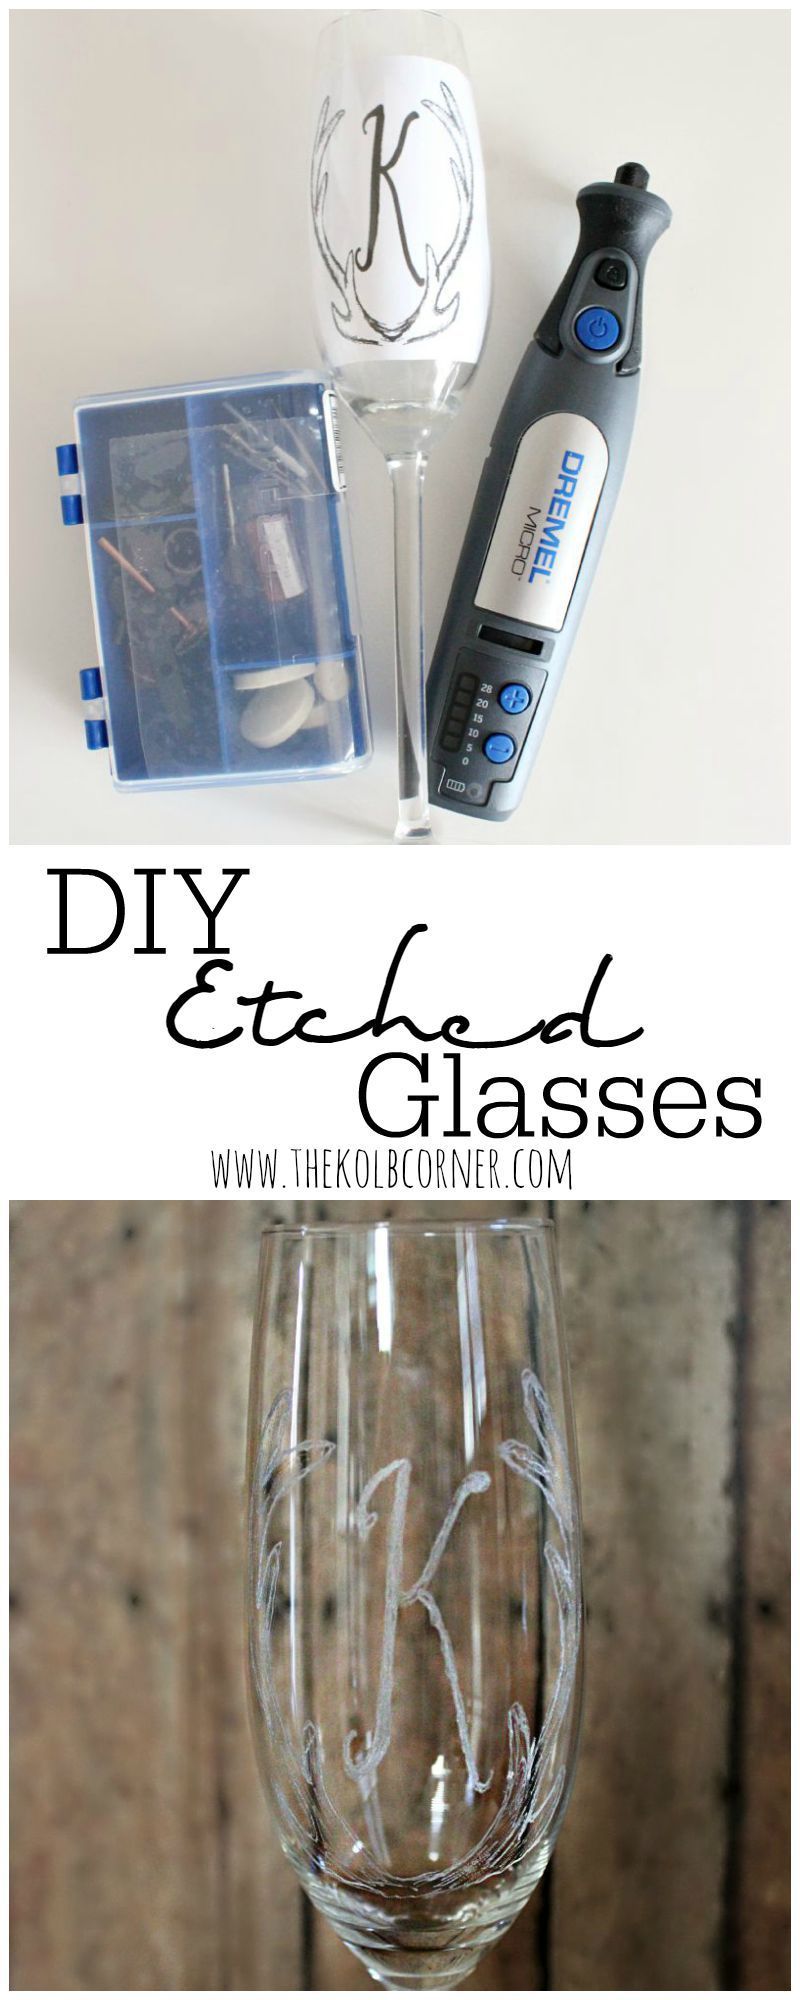 DIY Etched Champagne glasses using Dremel Micro